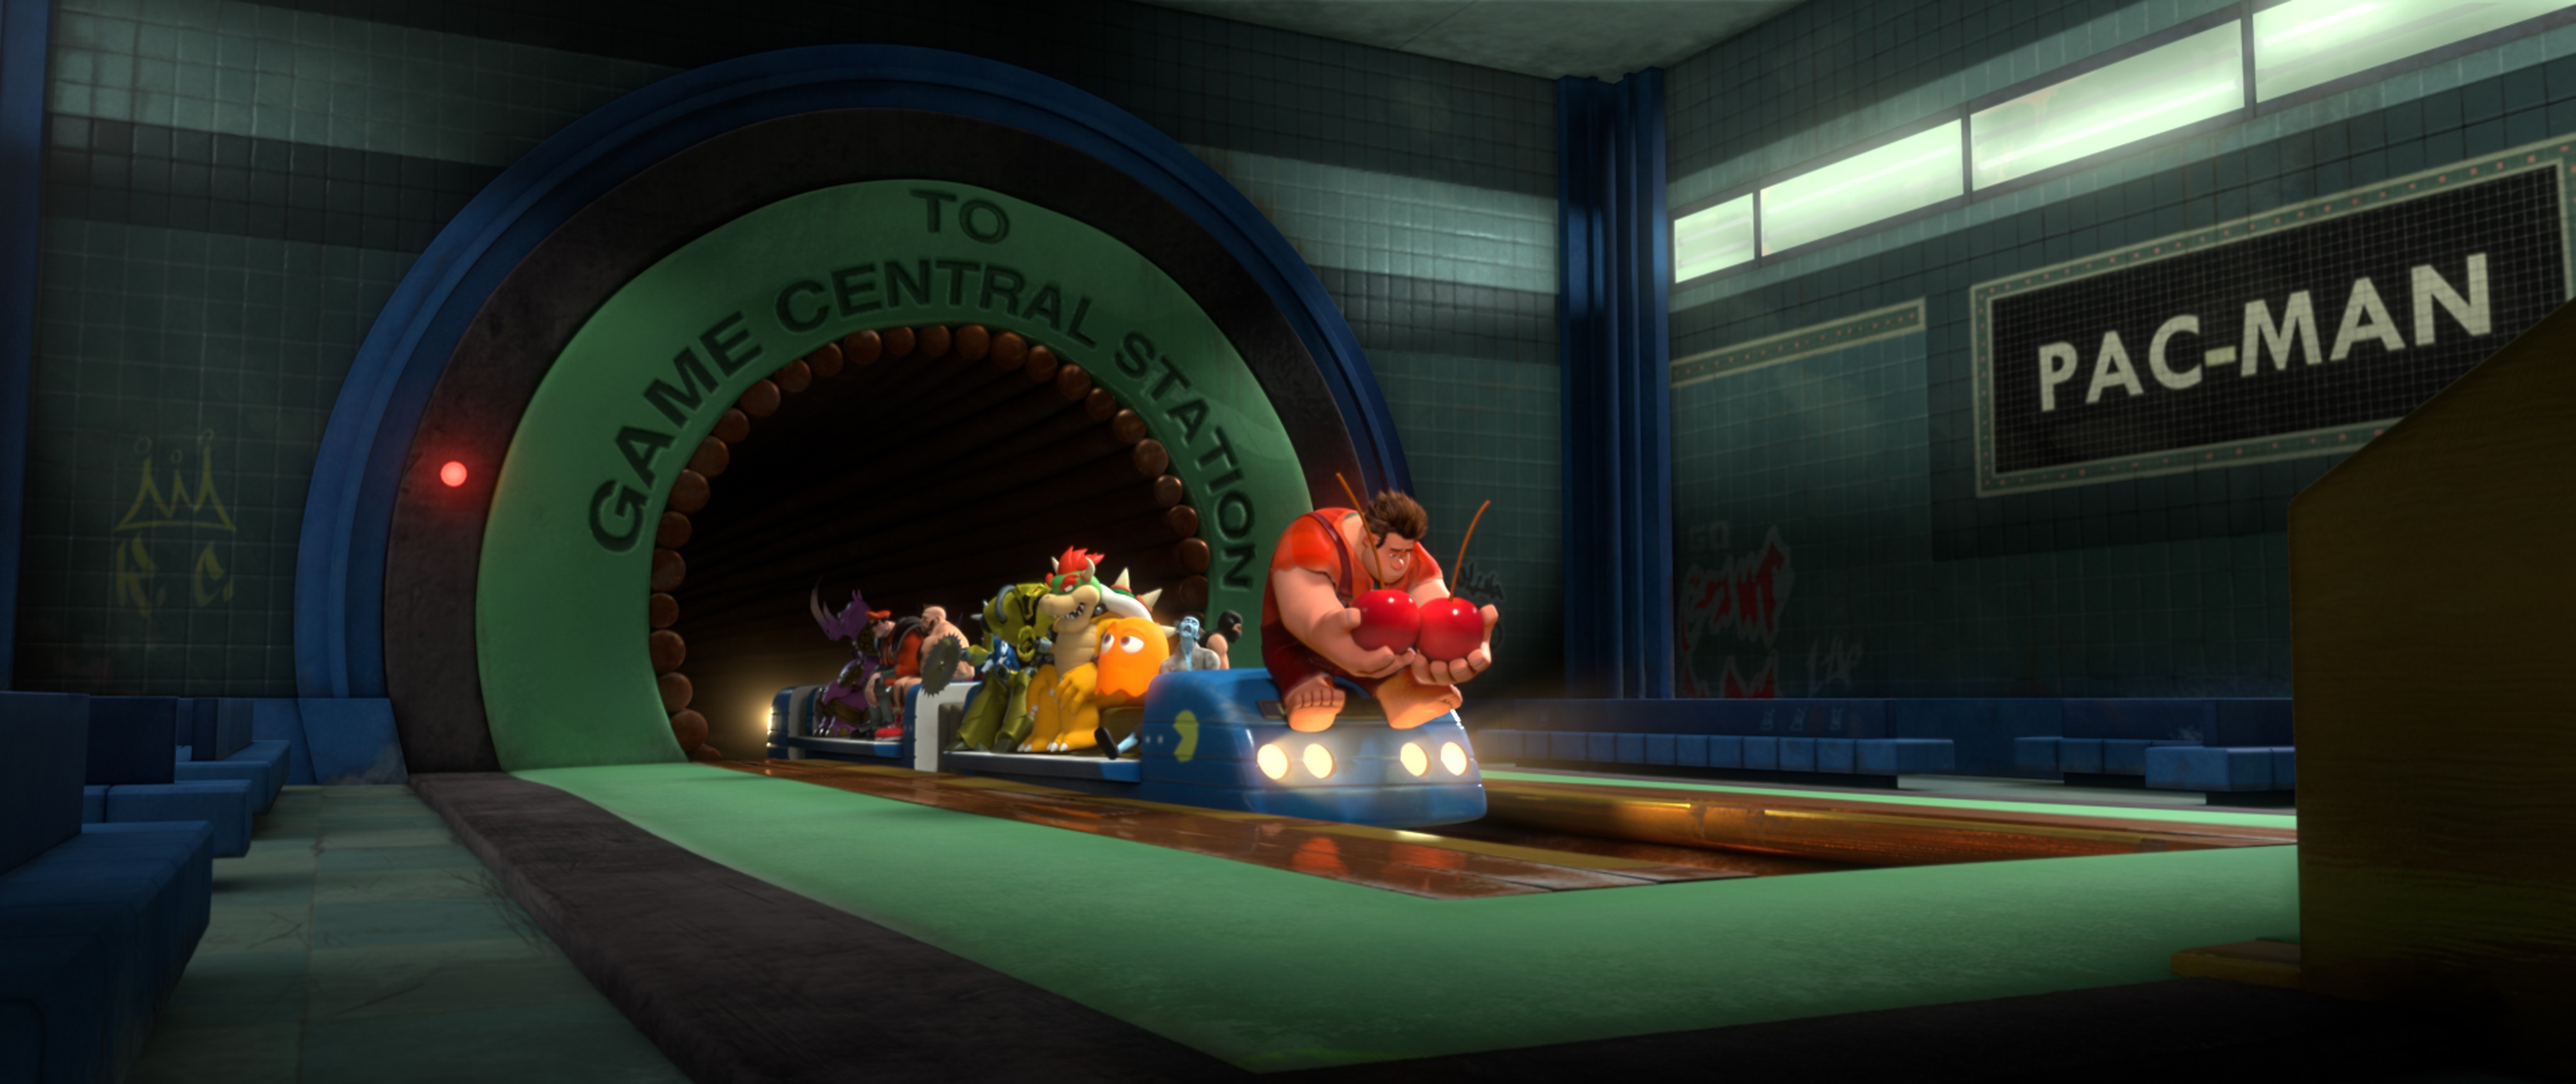 BAD-GUY BLUES - Wreck-It Ralph and a few fellow arcade-game bad guys head back to their games via Game Central Station following a BadAnon support group meeting where Ralph learns that being a Bad Guy in his game doesn't make him a bad guy. Still, he can't help but wonder what it would be like to be the hero. &quot;Wreck-It Ralph&quot; hits theaters Nov. 2, 2012, in Disney Digital 3D in select theaters.  2012 Disney. All Rights Reserved.